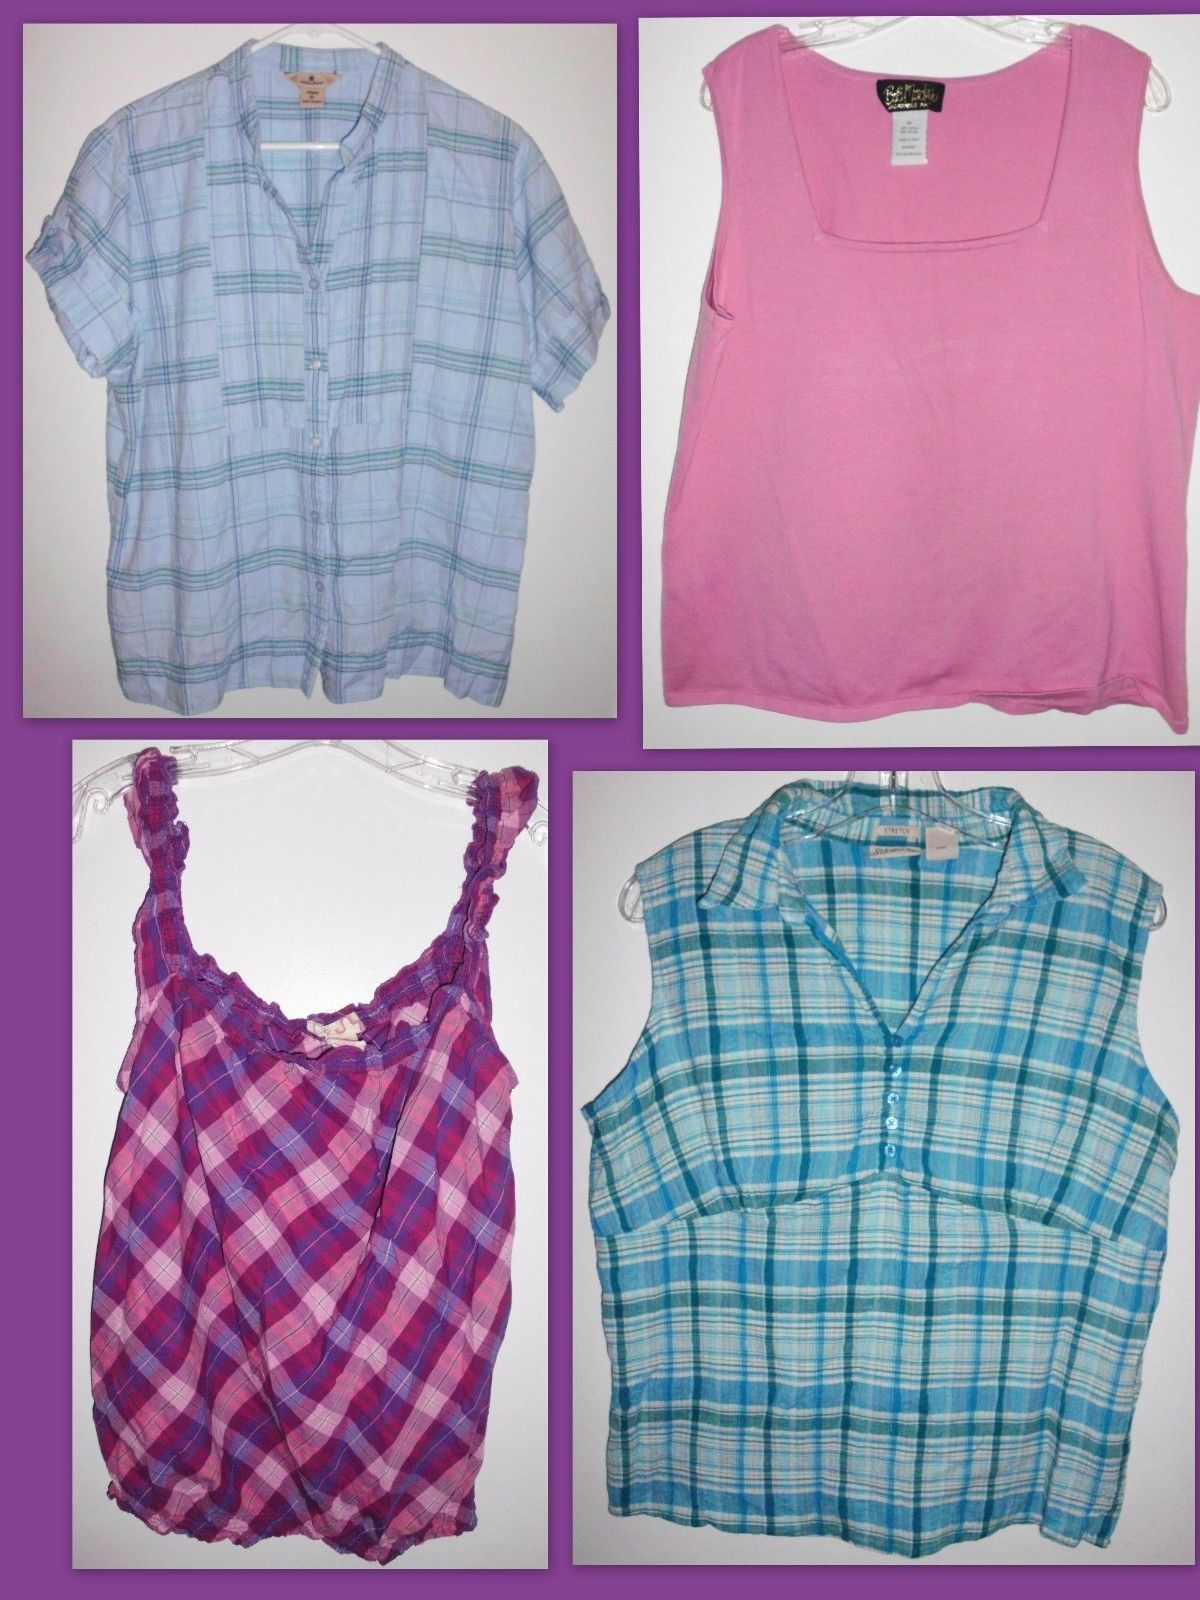 Primary image for Bob Mackie, Woolrich, OP, St. John's Bay Shirts X-LARGE - Lot of 4 Tops